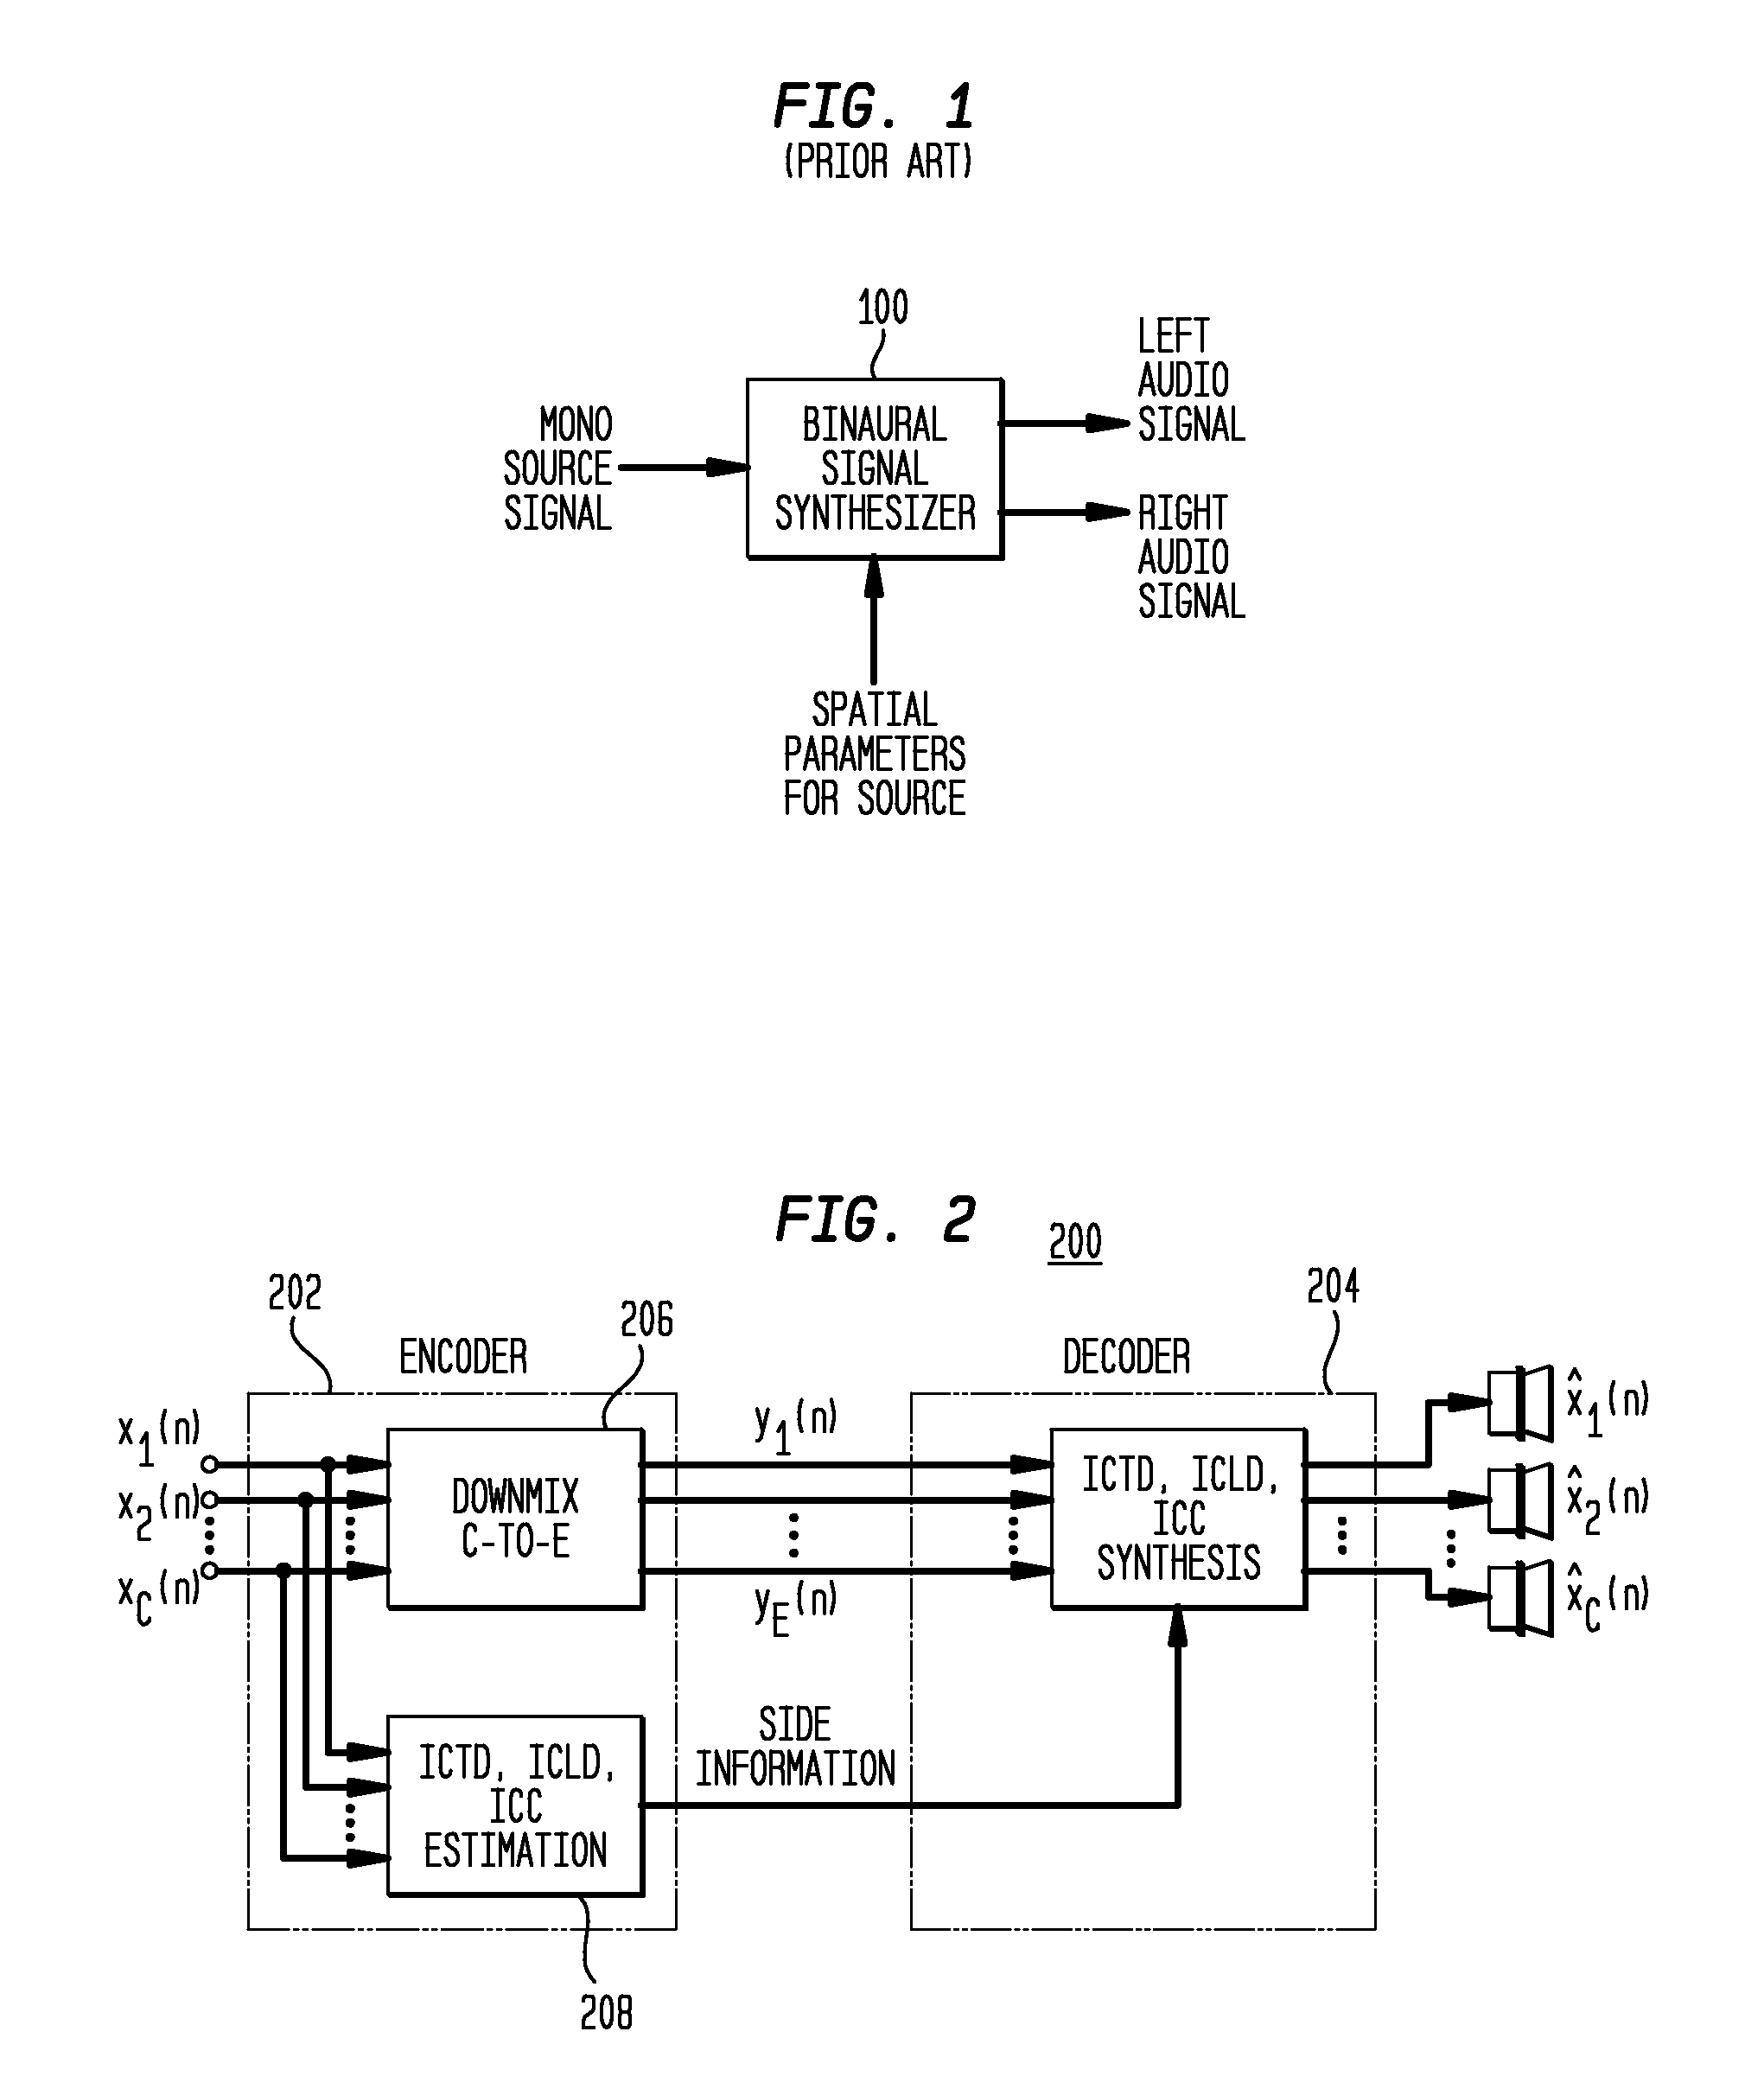 Patent Us8200500 Cue Based Audio Coding Decoding Google Patents Icc Data Module Wiring Diagram Drawing